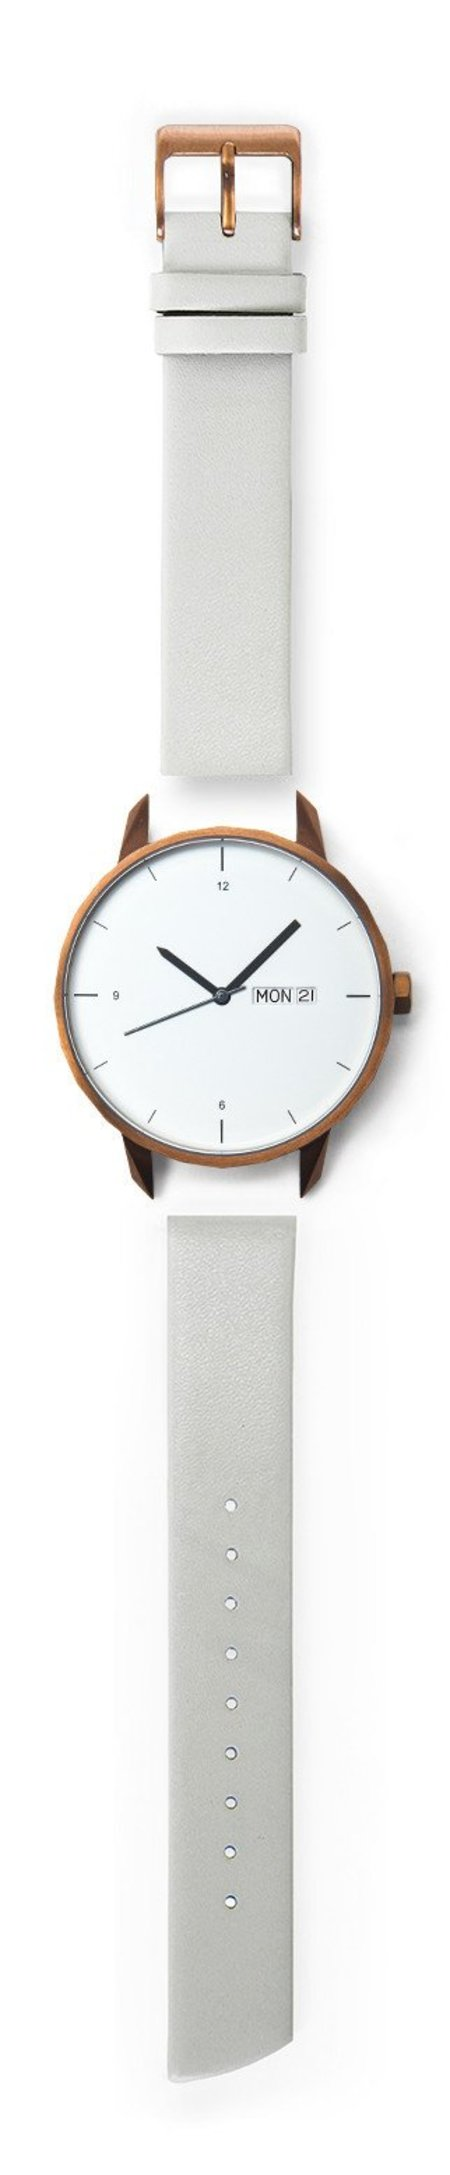 Tinker Watches 42mm Copper Watch Grey Strap